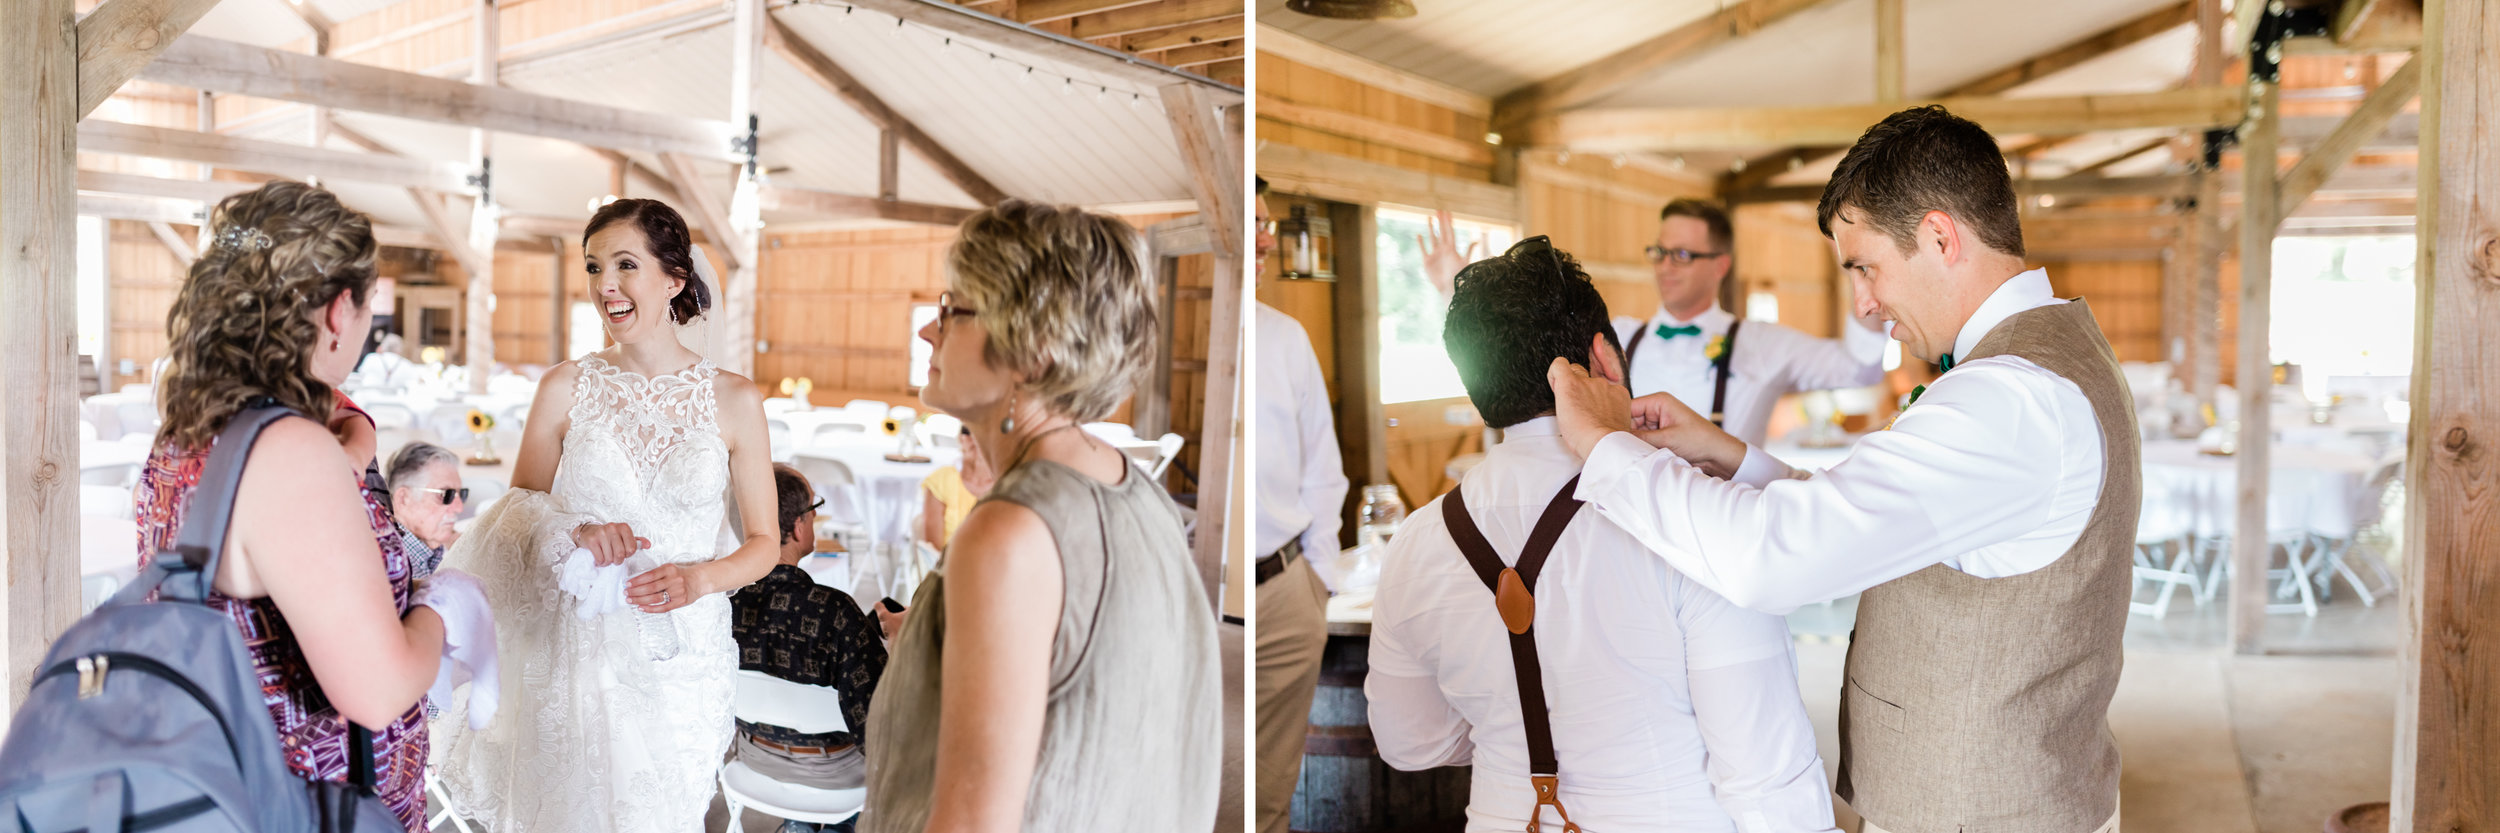 Bentonville Wedding Photographer Holland Barn 5.jpg